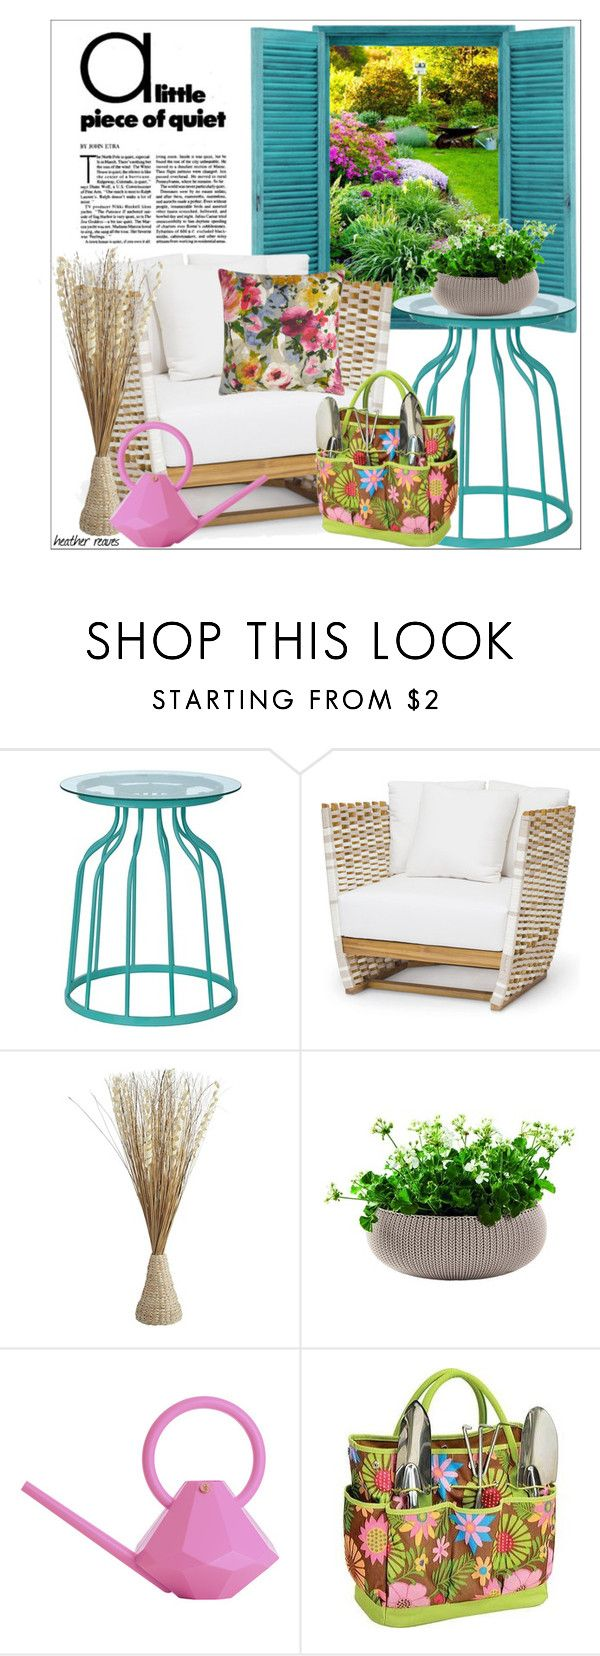 """""""Peace and Quiet"""" by heather-reaves ❤ liked on Polyvore featuring interior, interiors, interior design, home, home decor, interior decorating, Pier 1 Imports, Garden Glory, Picnic at Ascot and Eastern Accents"""